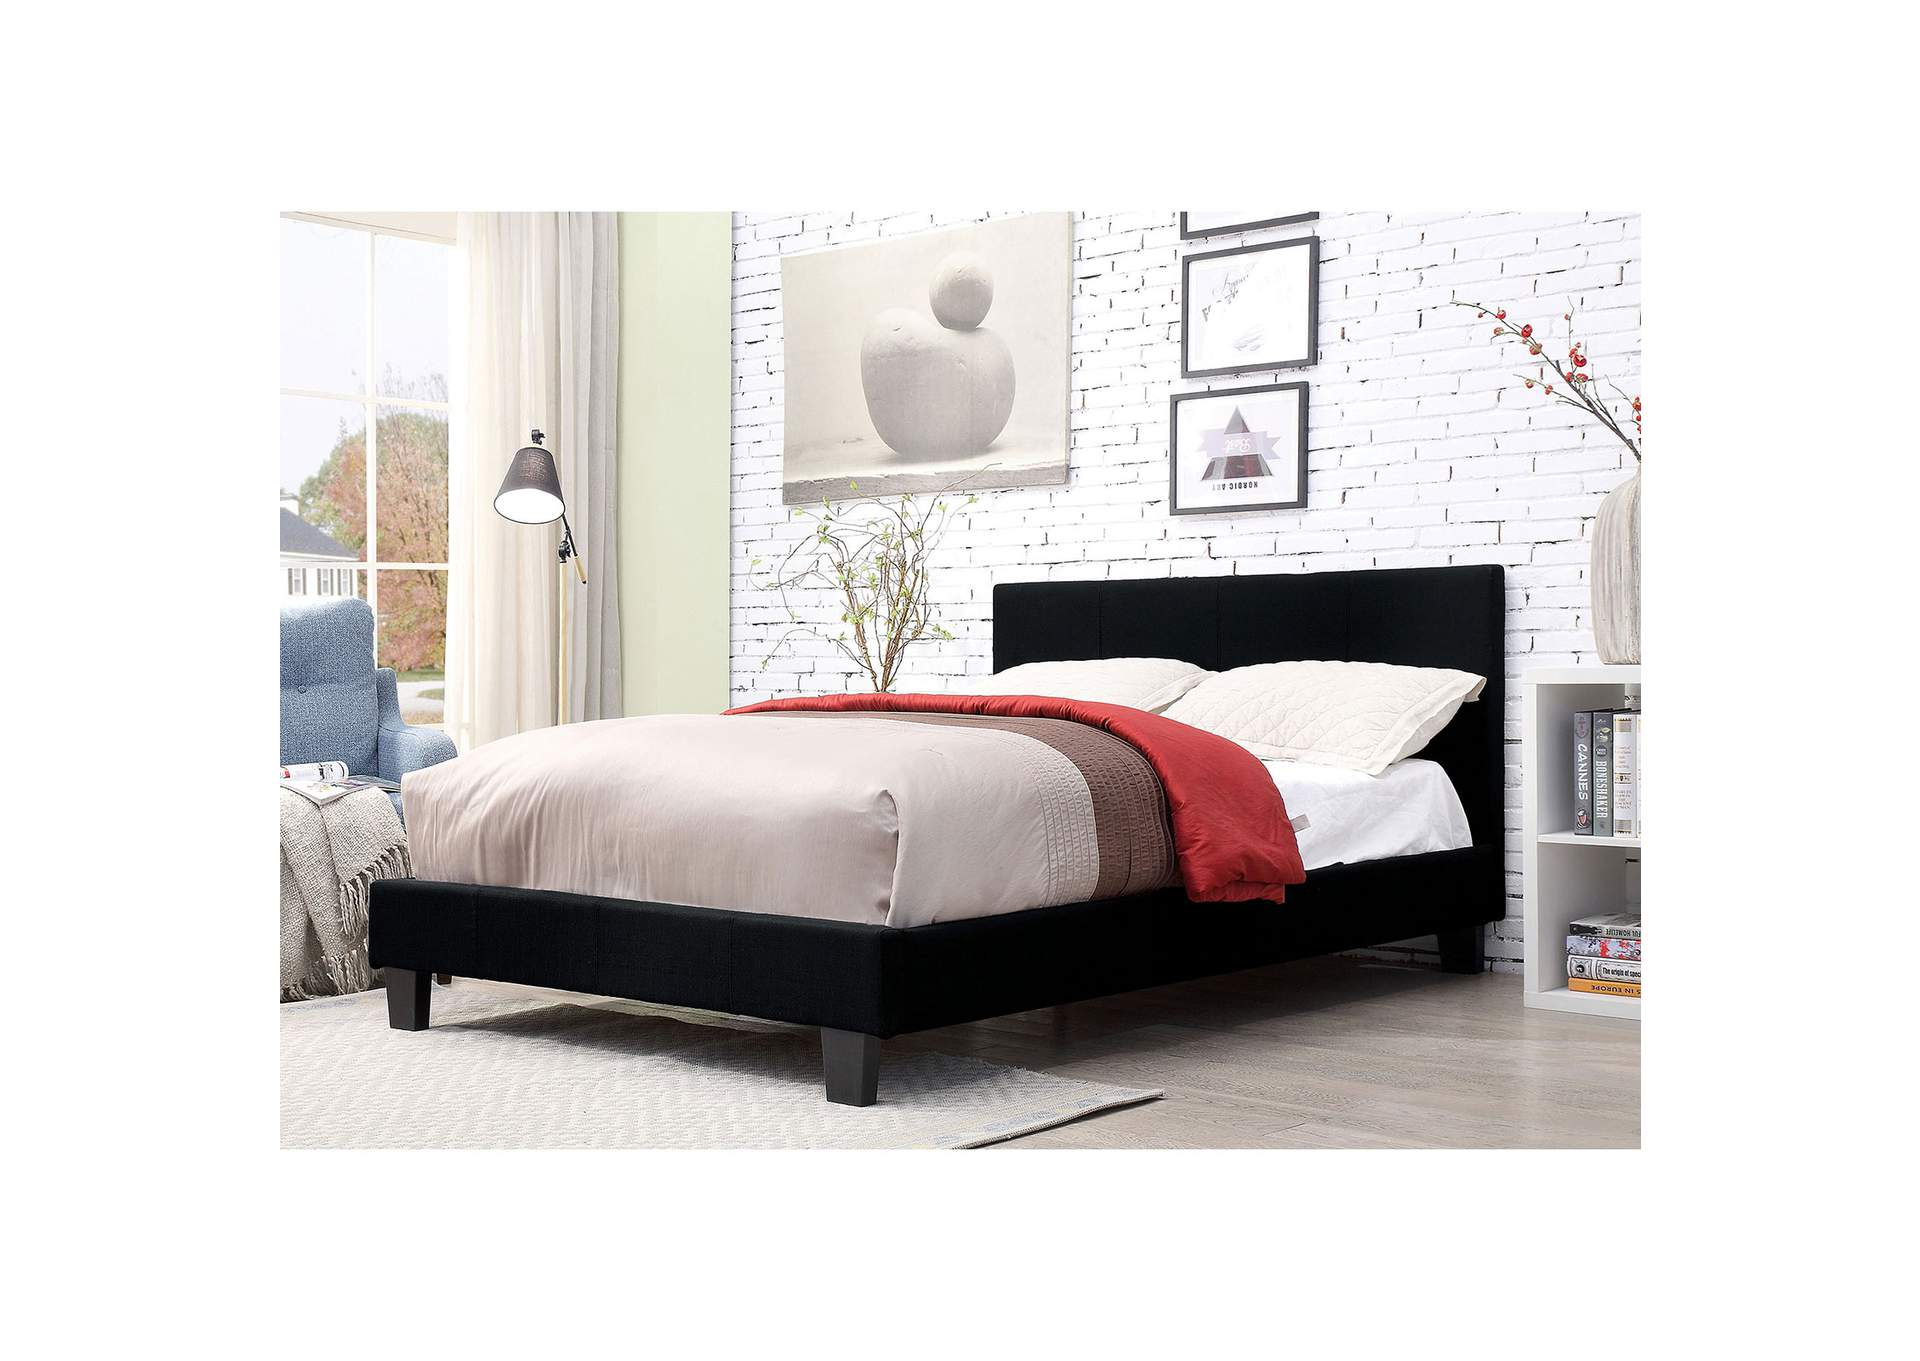 Sims Black Twin Platform Bed,Furniture of America